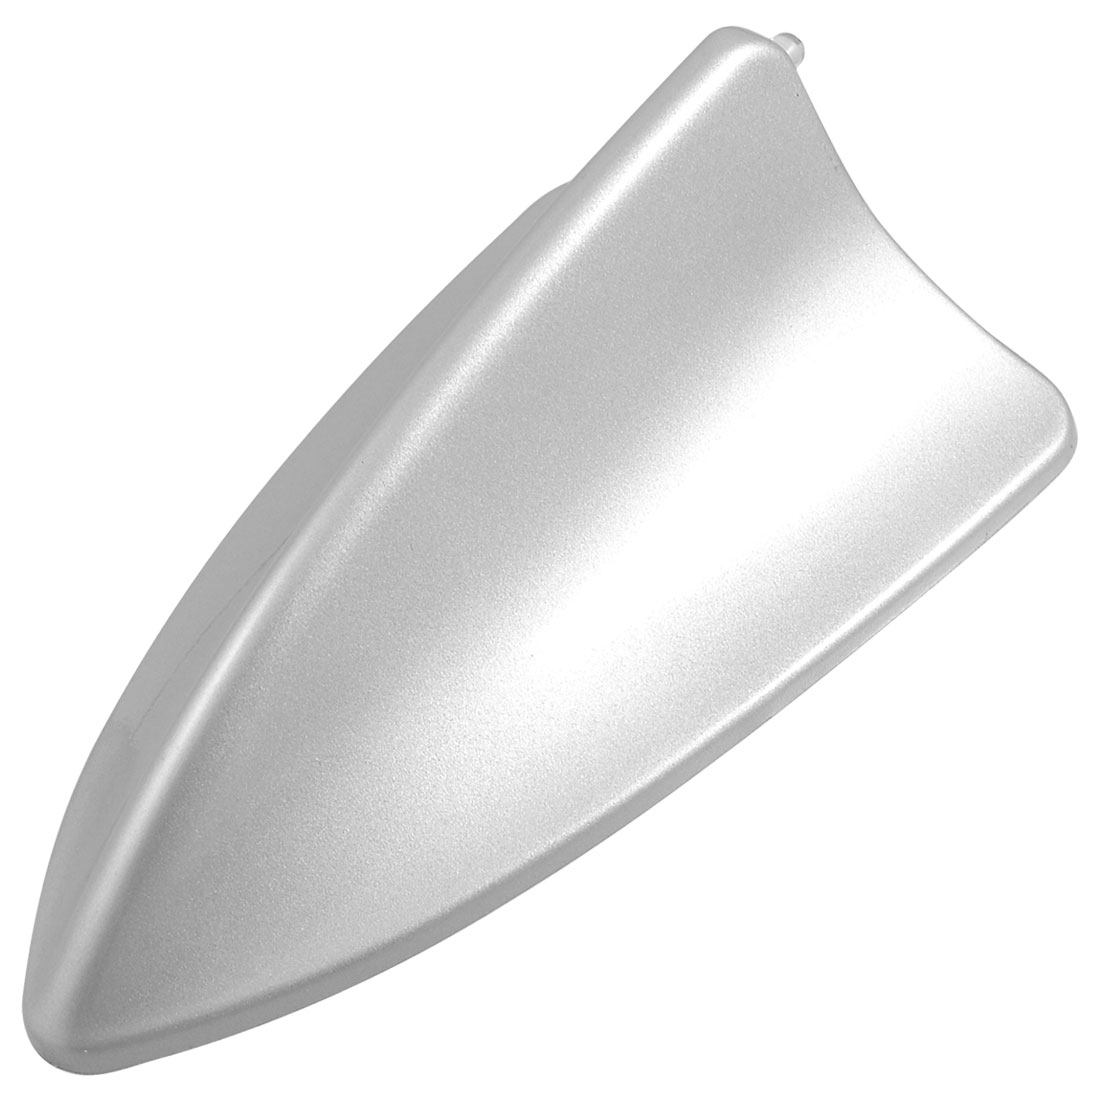 Self Adhesive Shark Fin Roof Decorative Antenna Gray for Car